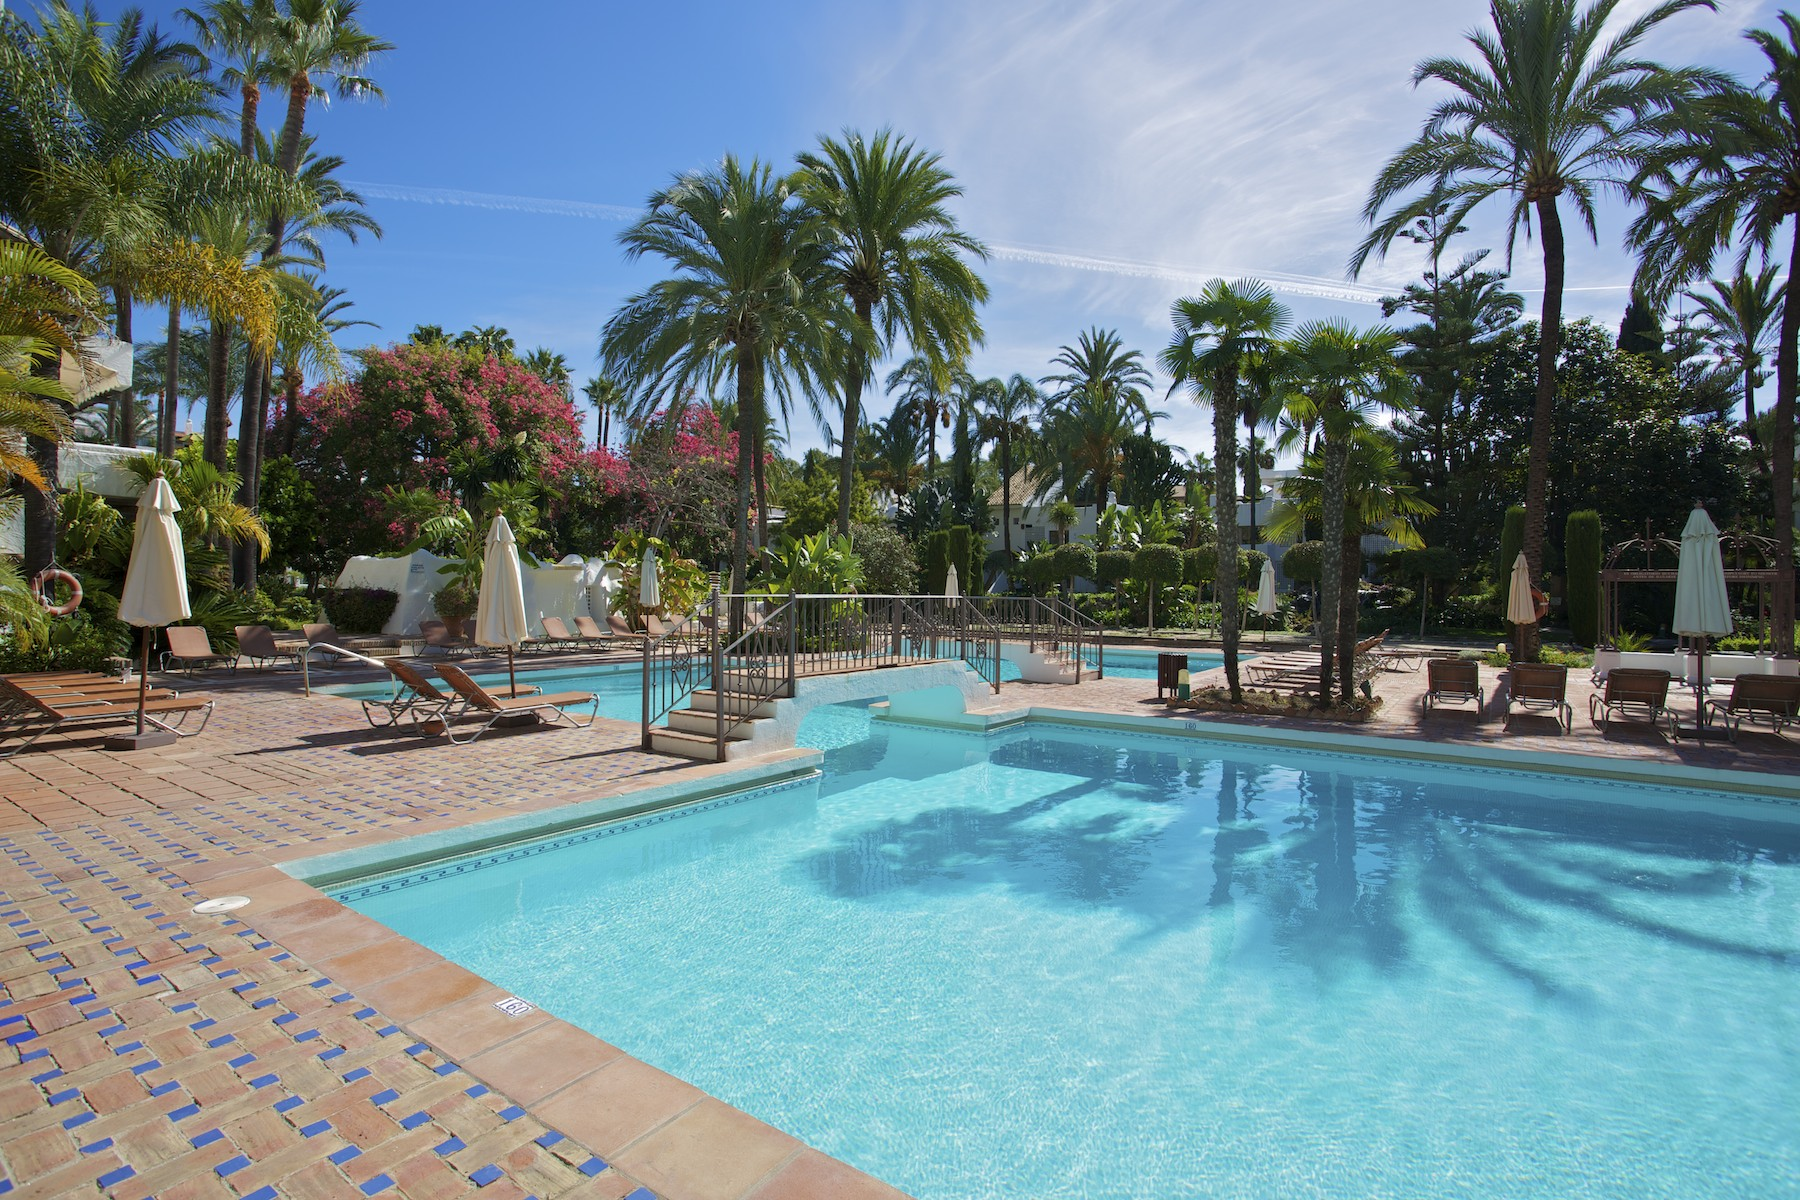 Apartment for Sale at SPECTACULAR, MODERN APARTMENT IN PUERTO BANUS, MARBELLA Other Andalucia, Andalucia, Spain